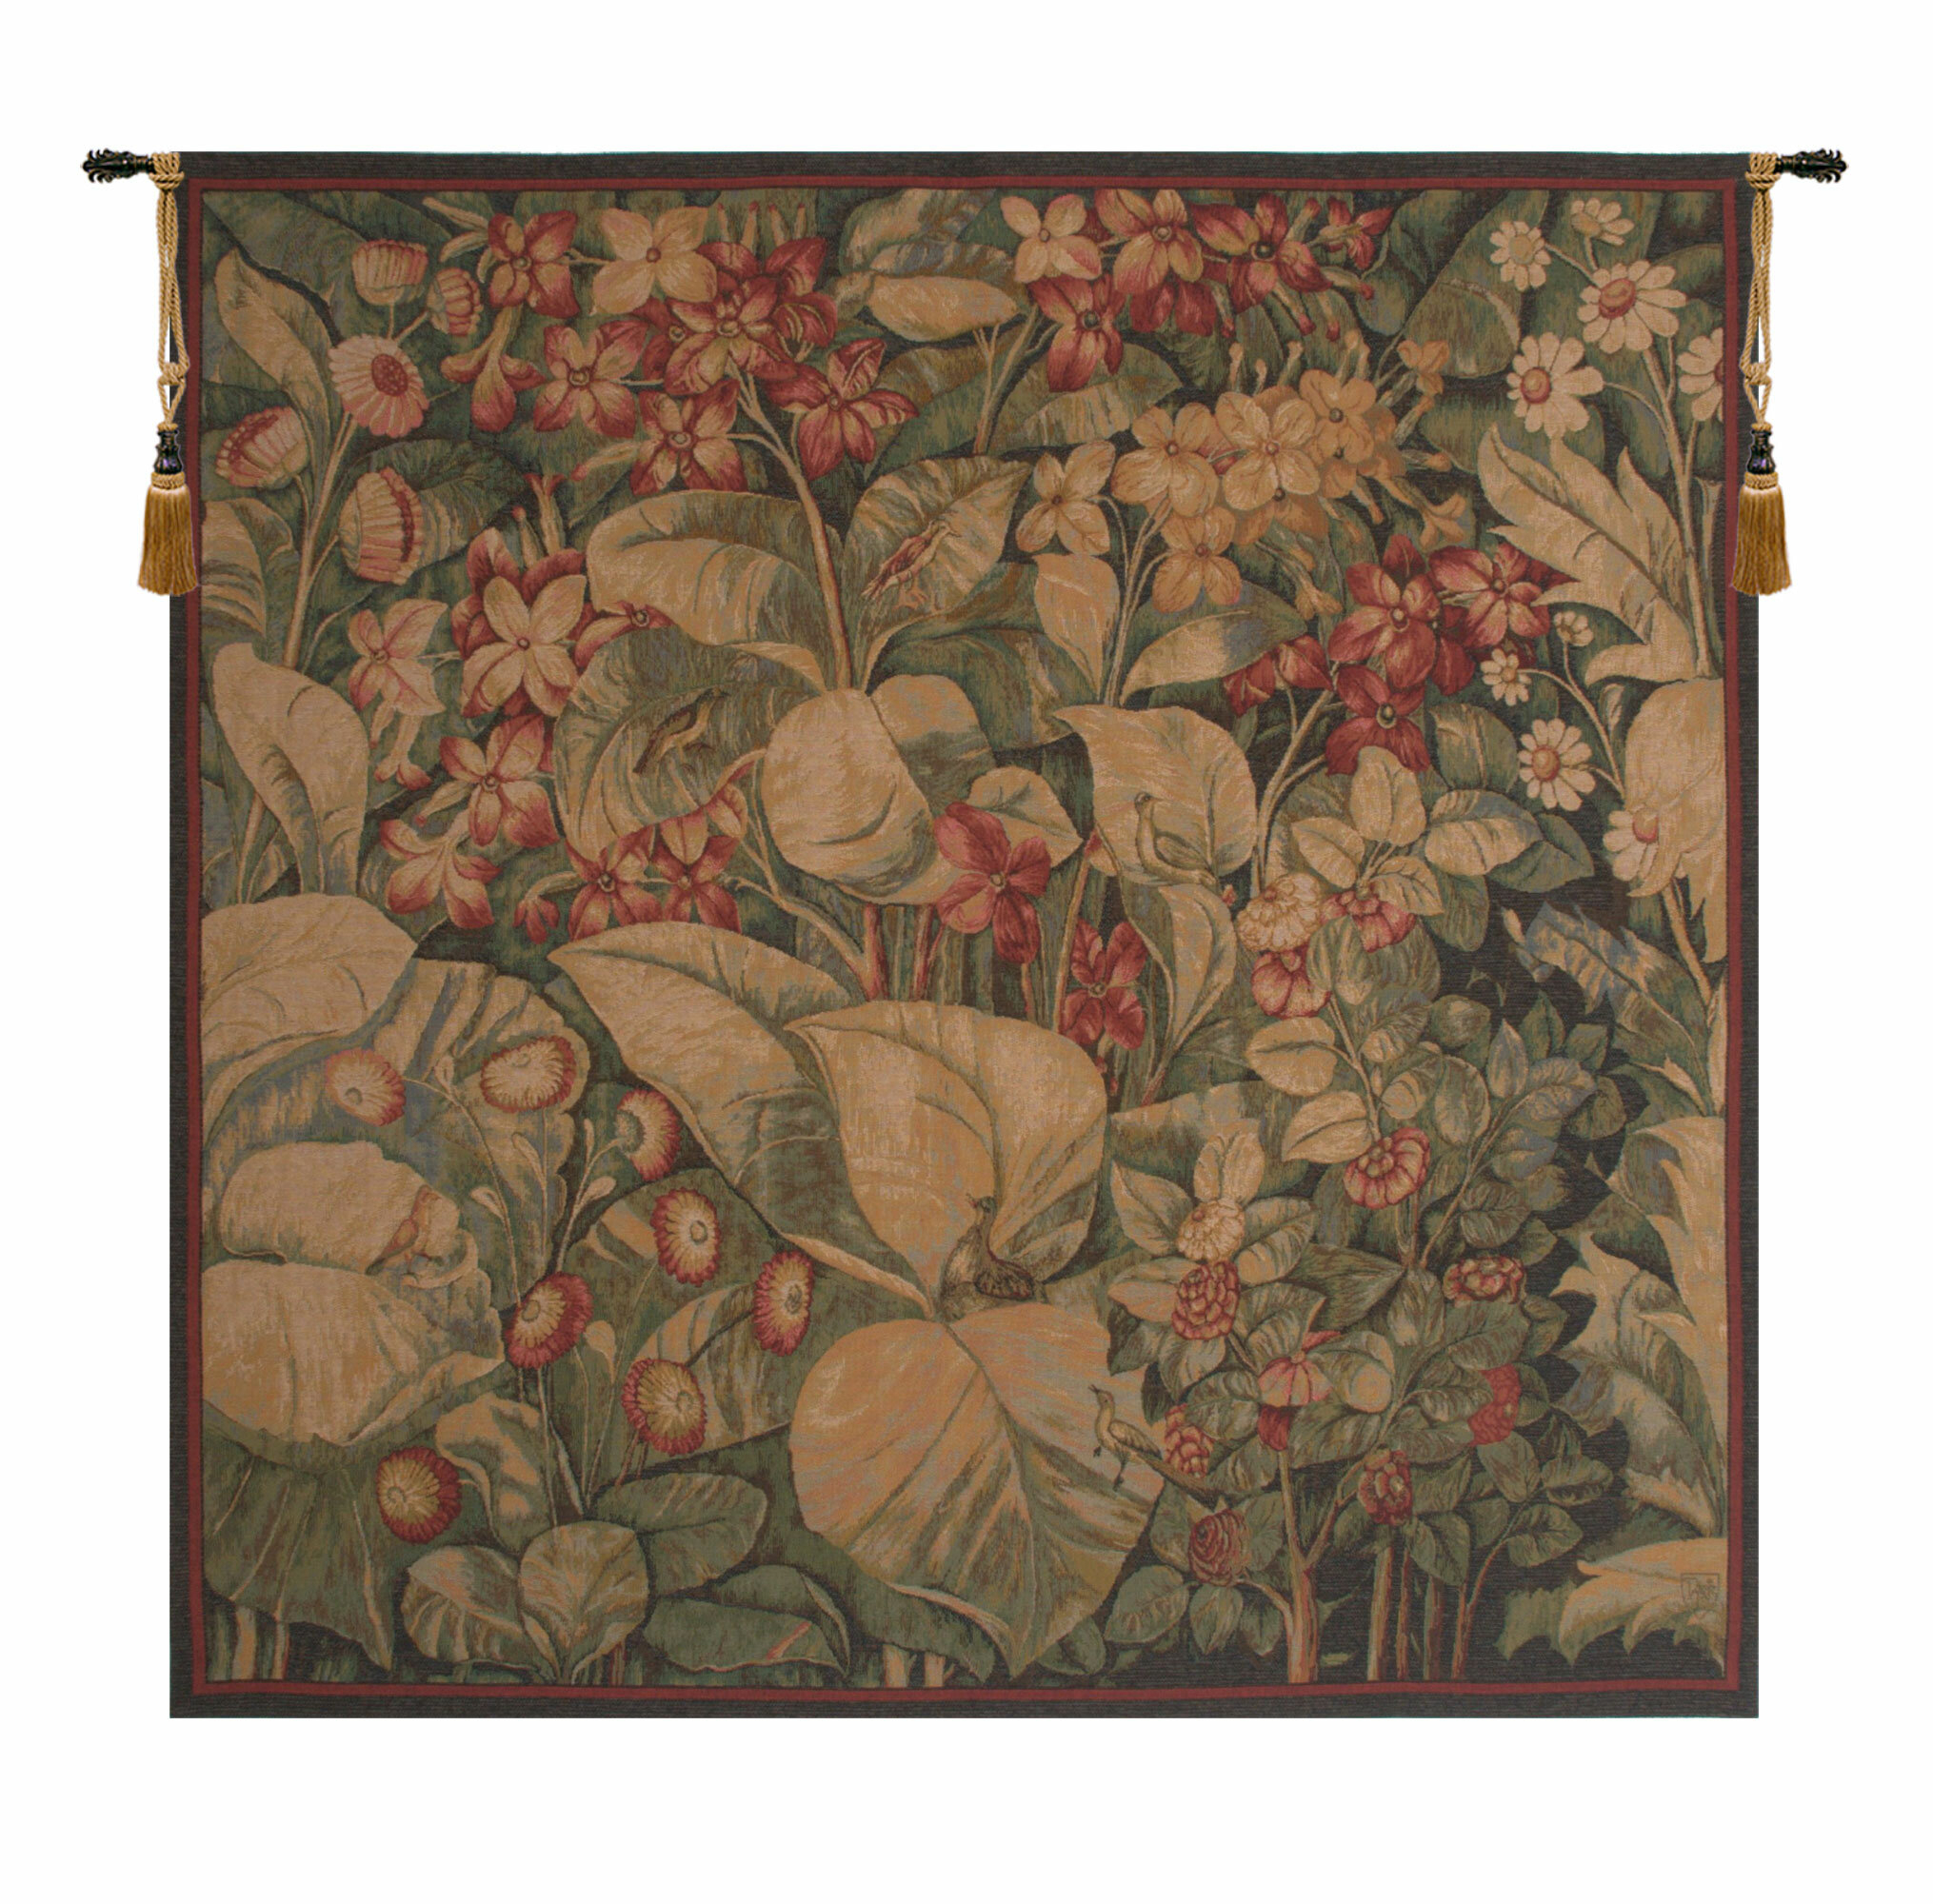 European Aristoloches Tapestry Intended For Most Popular Blended Fabric Ethereal Days Chinoiserie Wall Hangings With Rod (View 6 of 20)